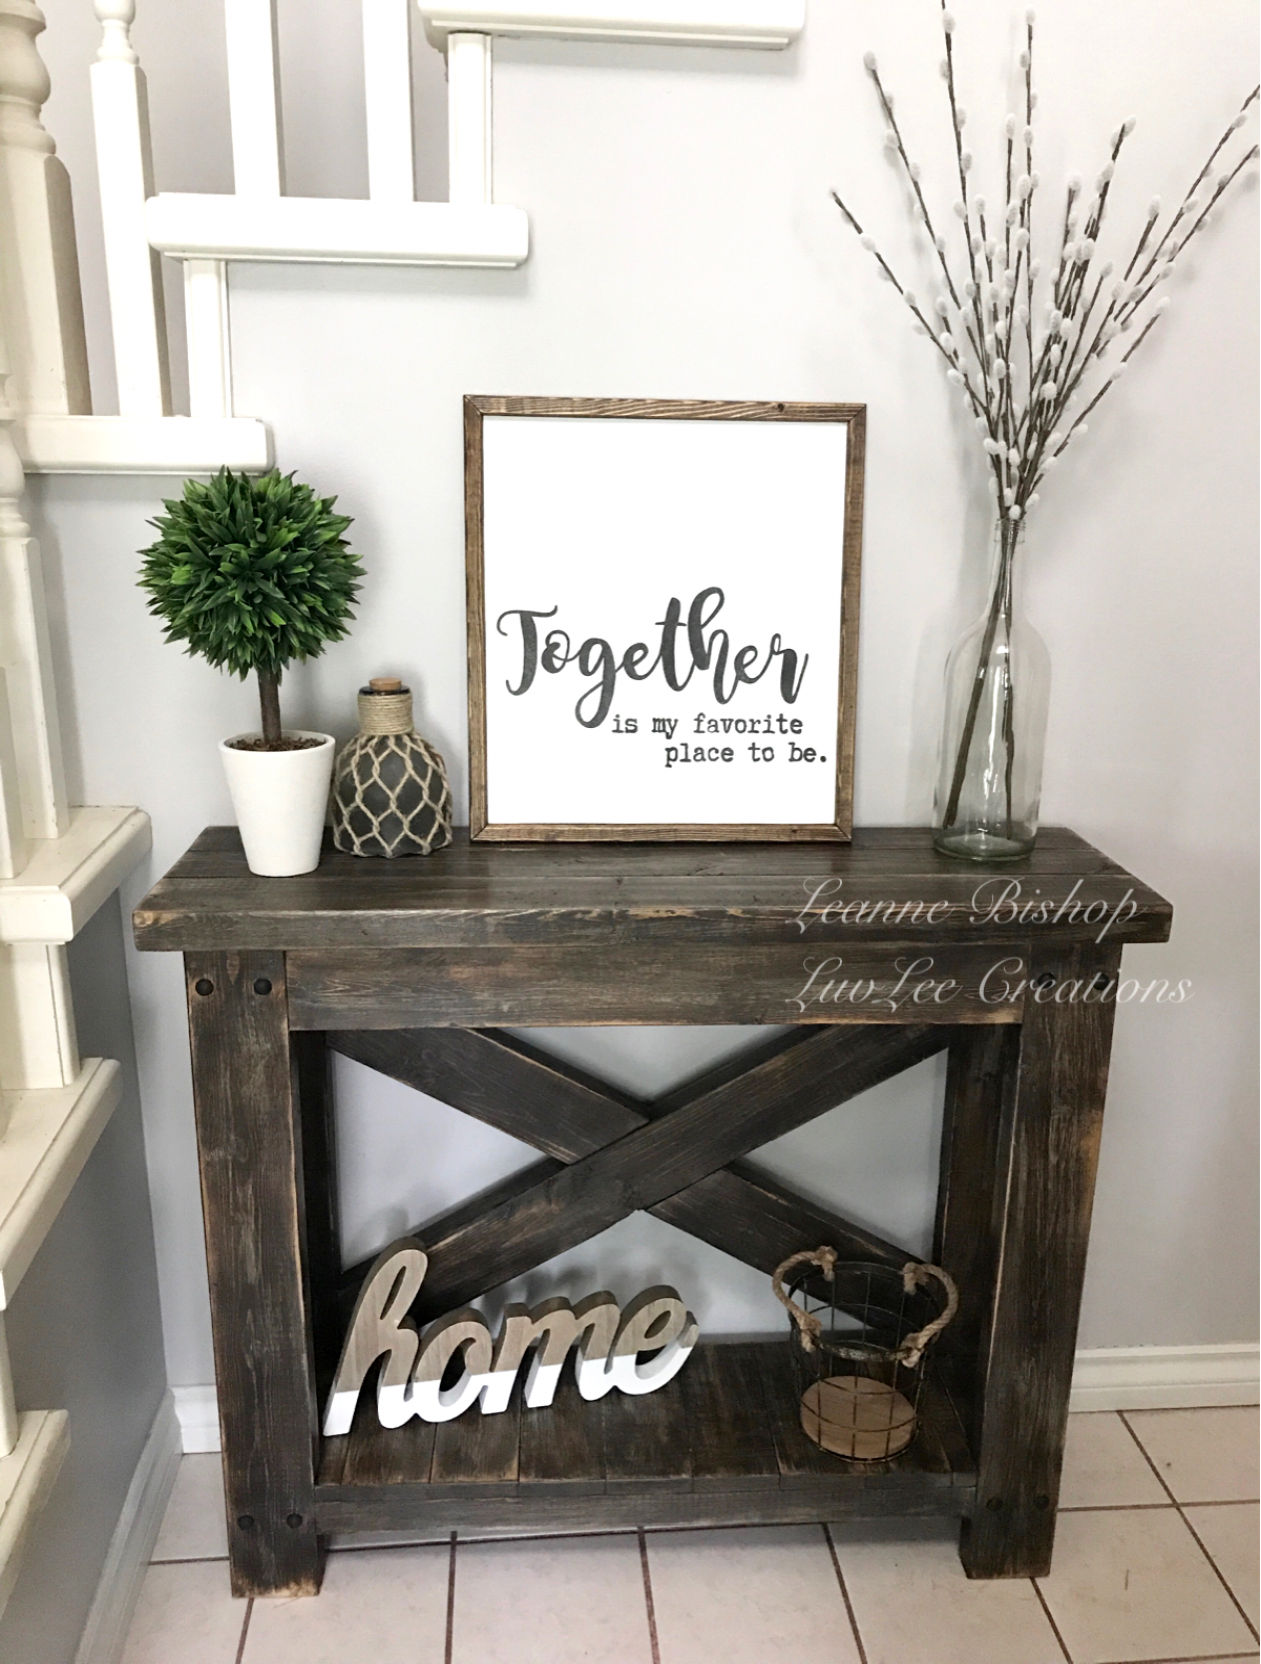 20 Inspirational Home Office Decor Ideas For 2019: 20+ Beautiful Entry Table Decor Ideas To Give Some Inspiration On Updating Your House Or Adding